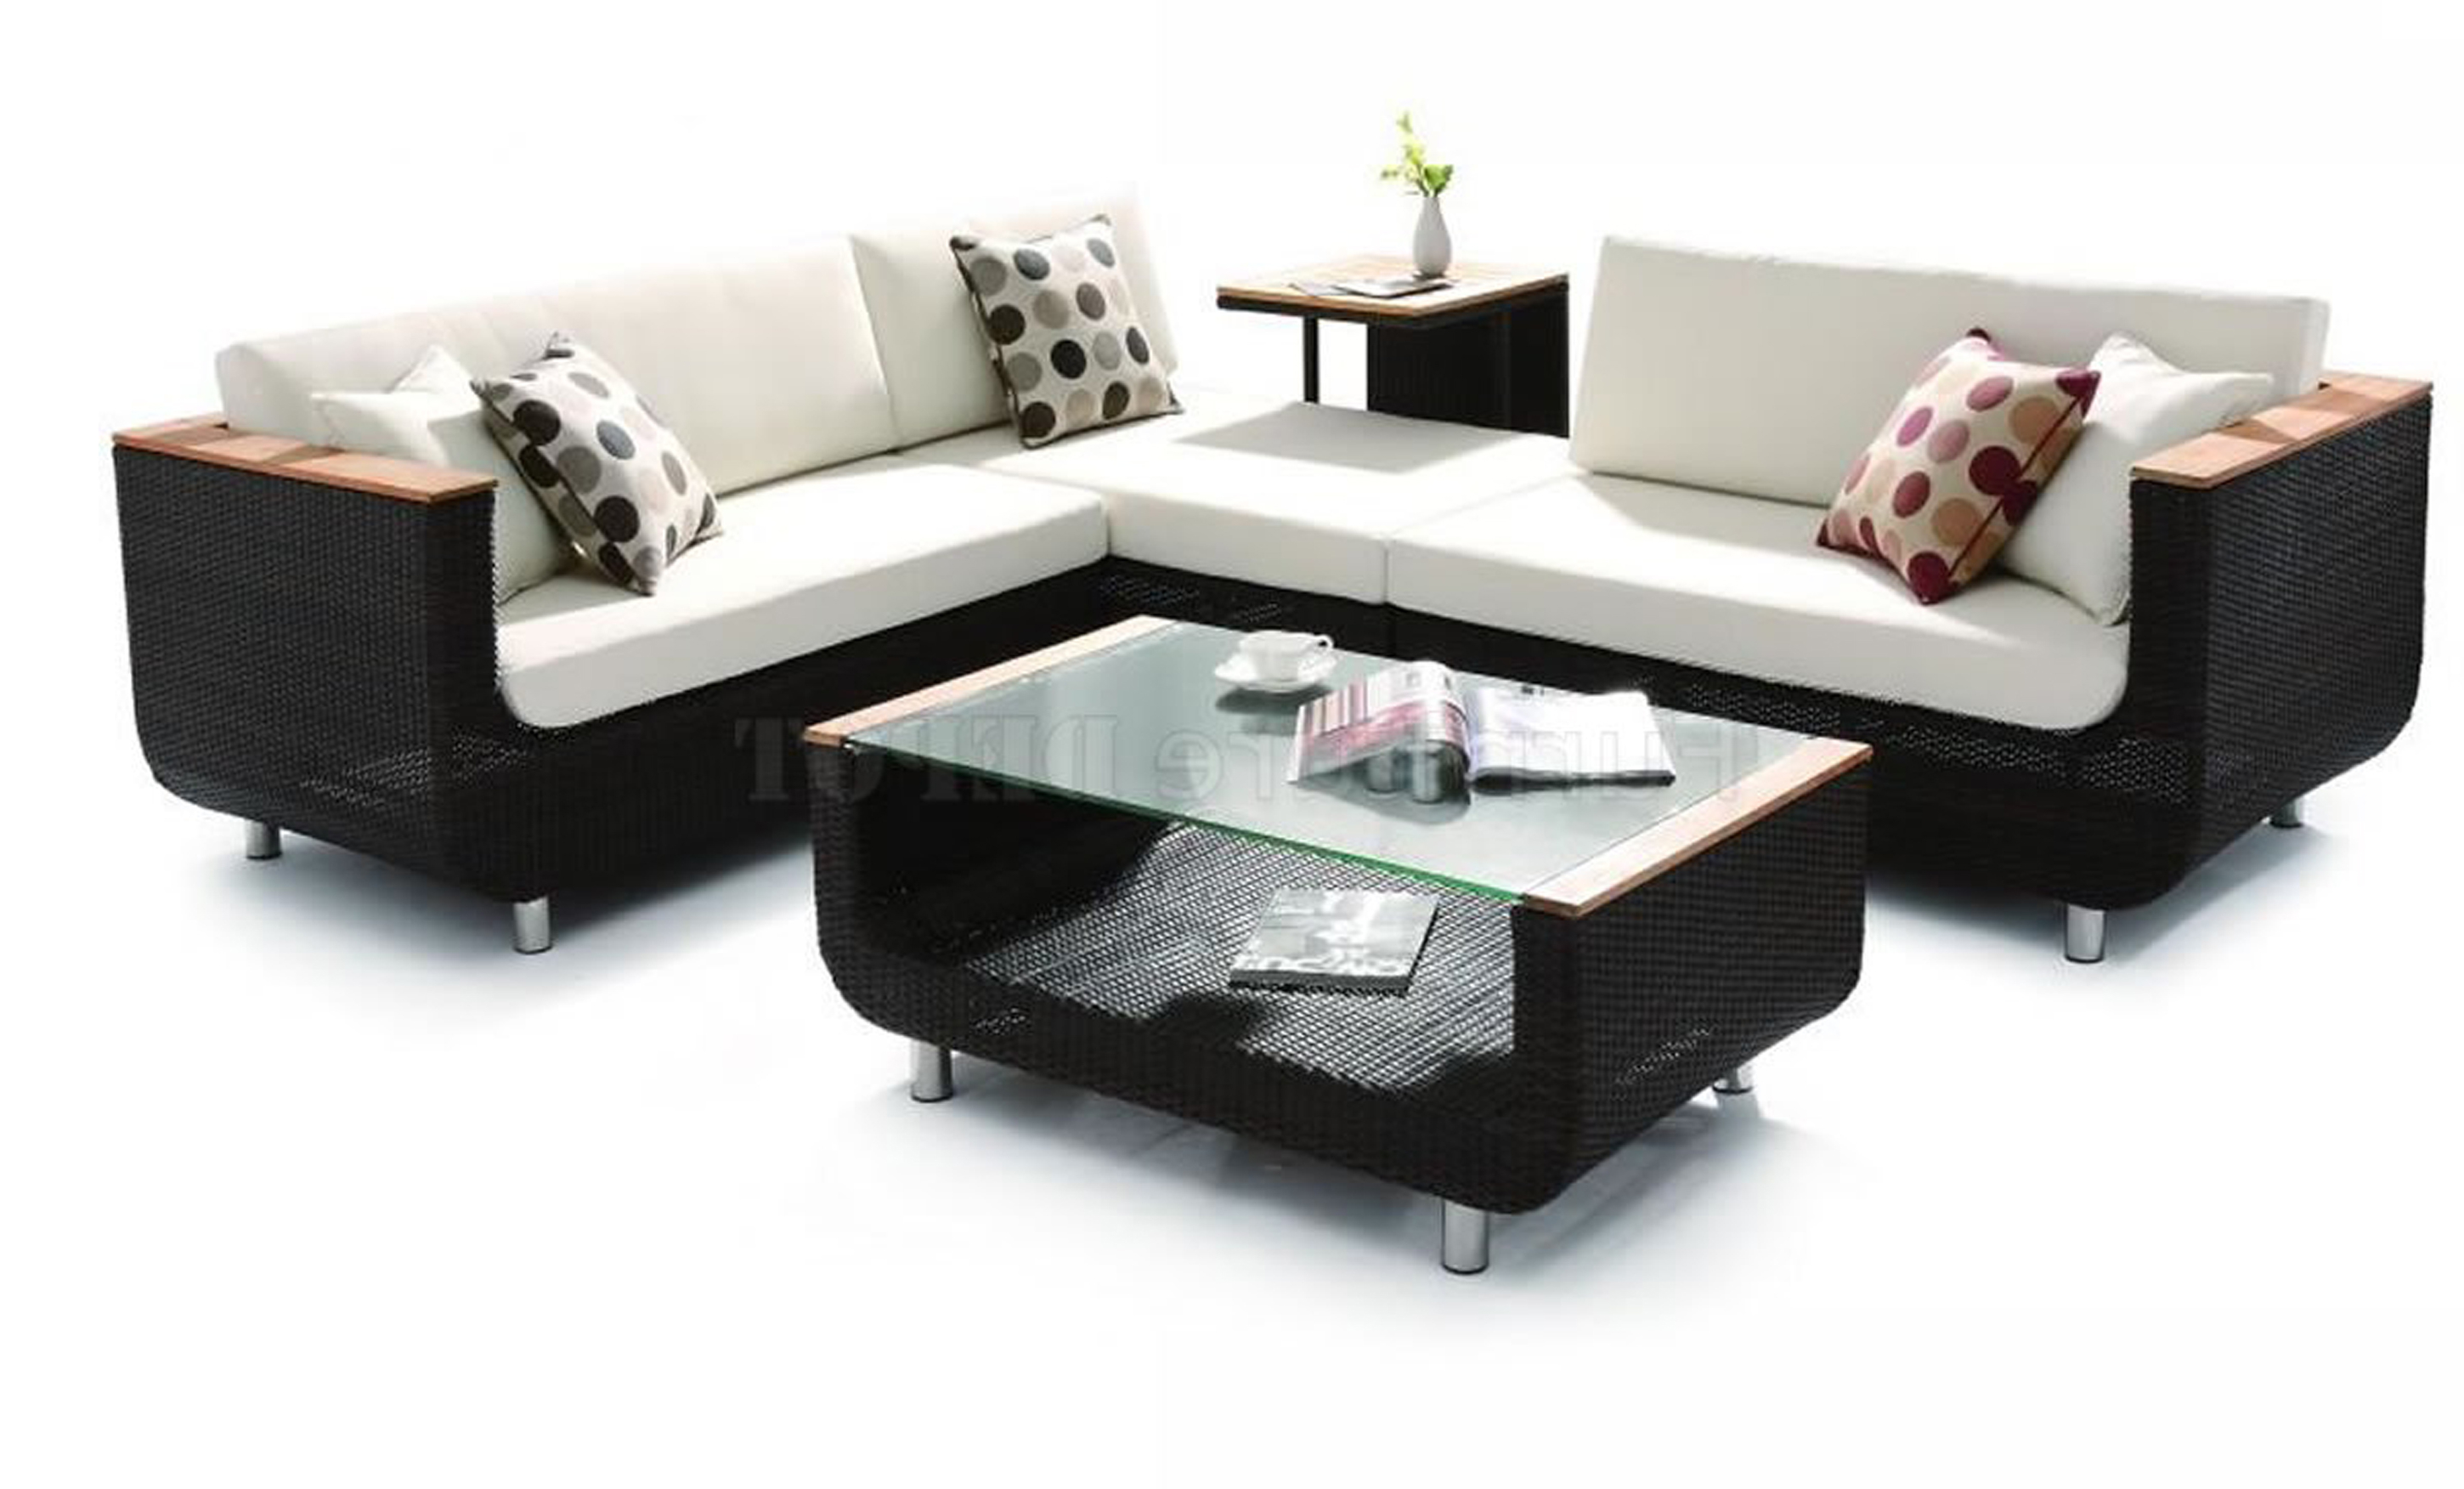 Amazing Modern Outdoor Design Idea With White Sofa With Gray Polka Dot Throw Pillows And Glass Coffee Table Impressive Modern Outdoor Design Ideas (View 18 of 28)